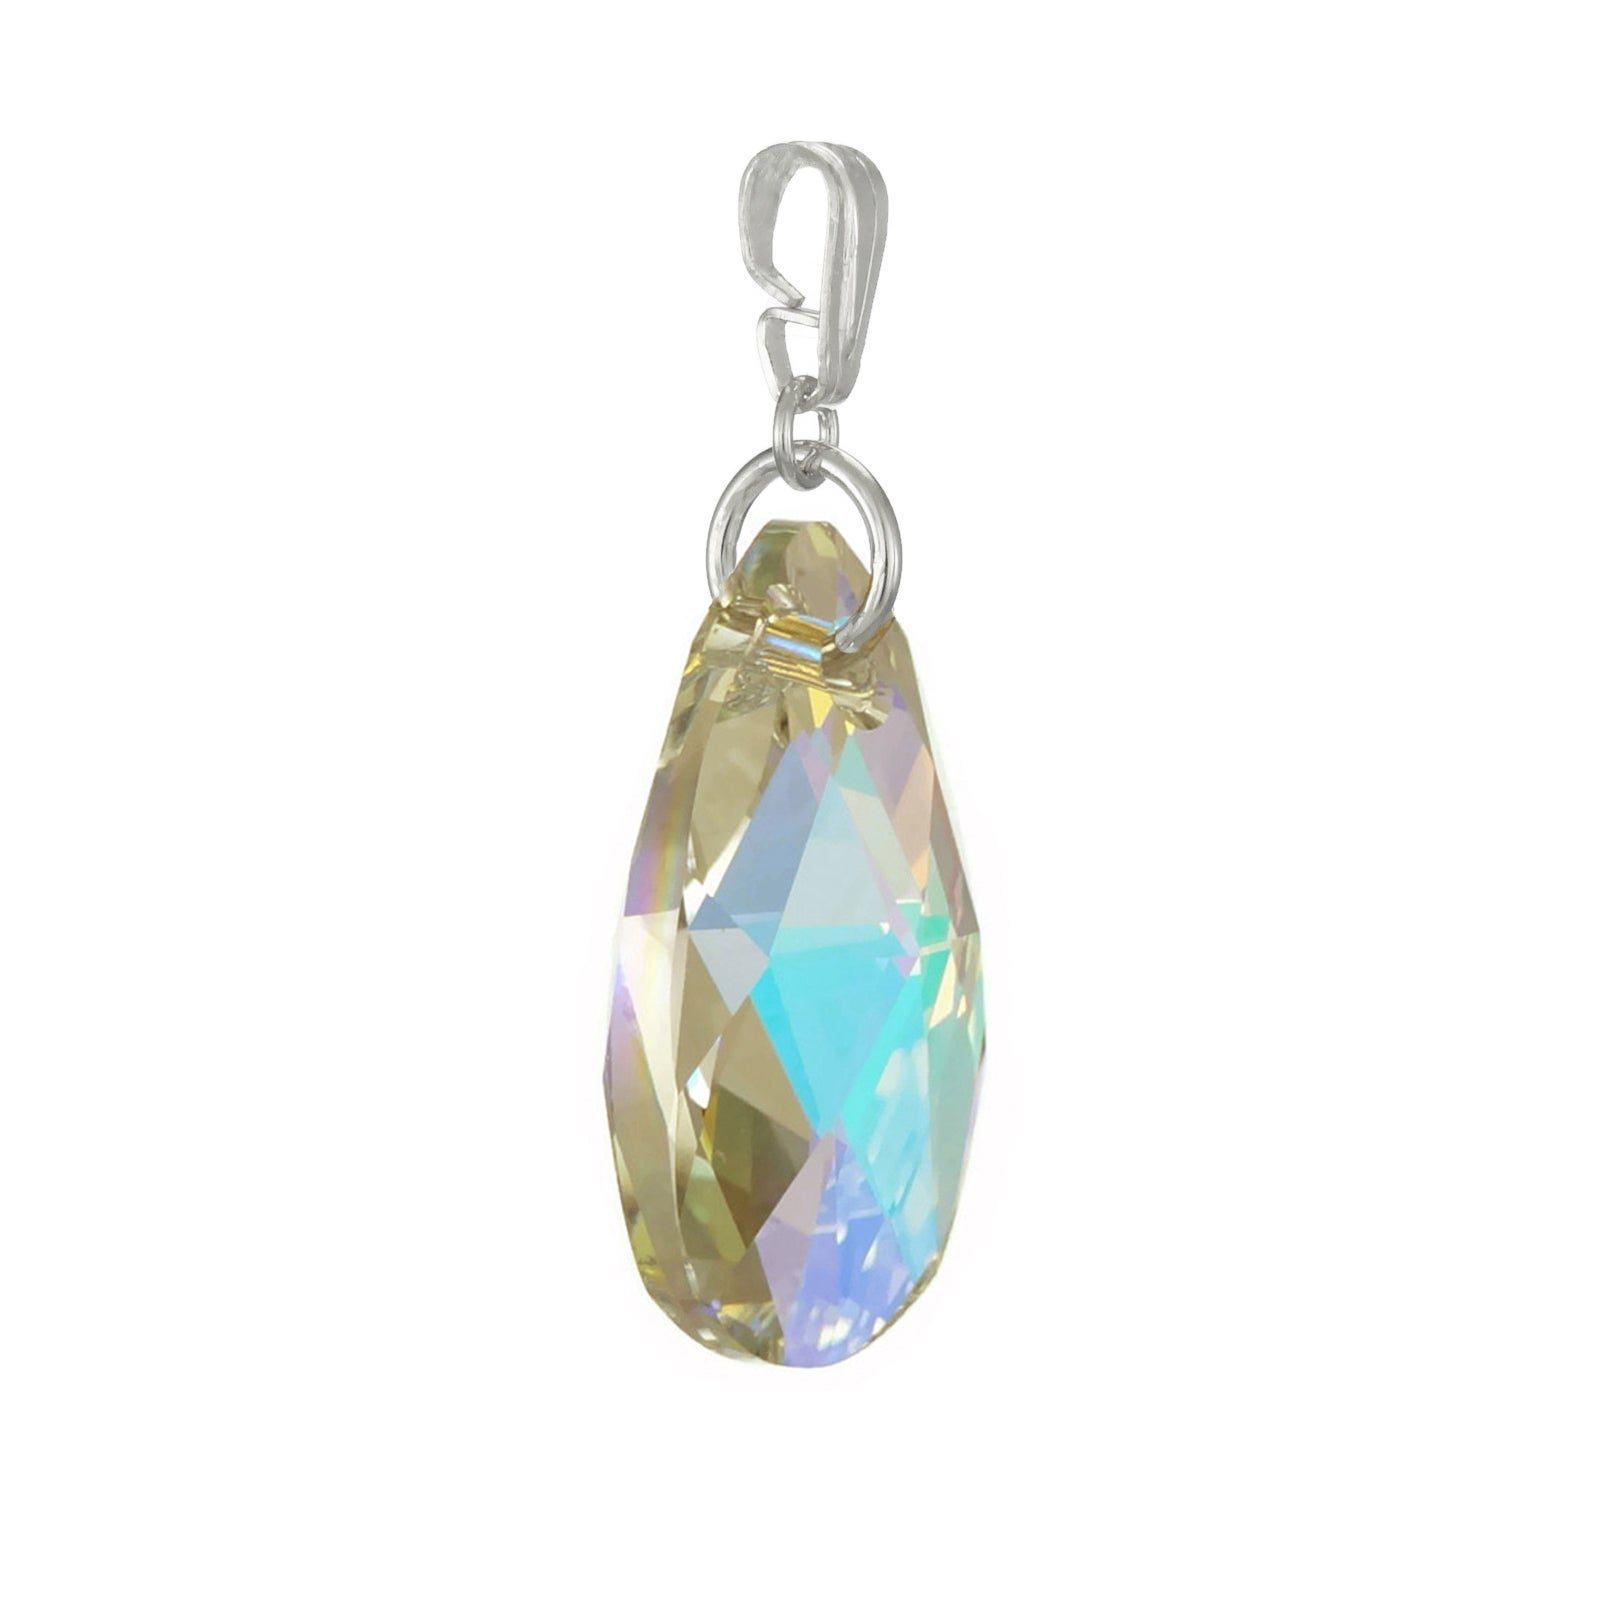 daf1def21 Shop Handmade Jewelry by Dawn Aurora Borealis Swarovski Crystal Pear  Sterling Silver Pendant (USA) - On Sale - Free Shipping On Orders Over $45  - Overstock ...